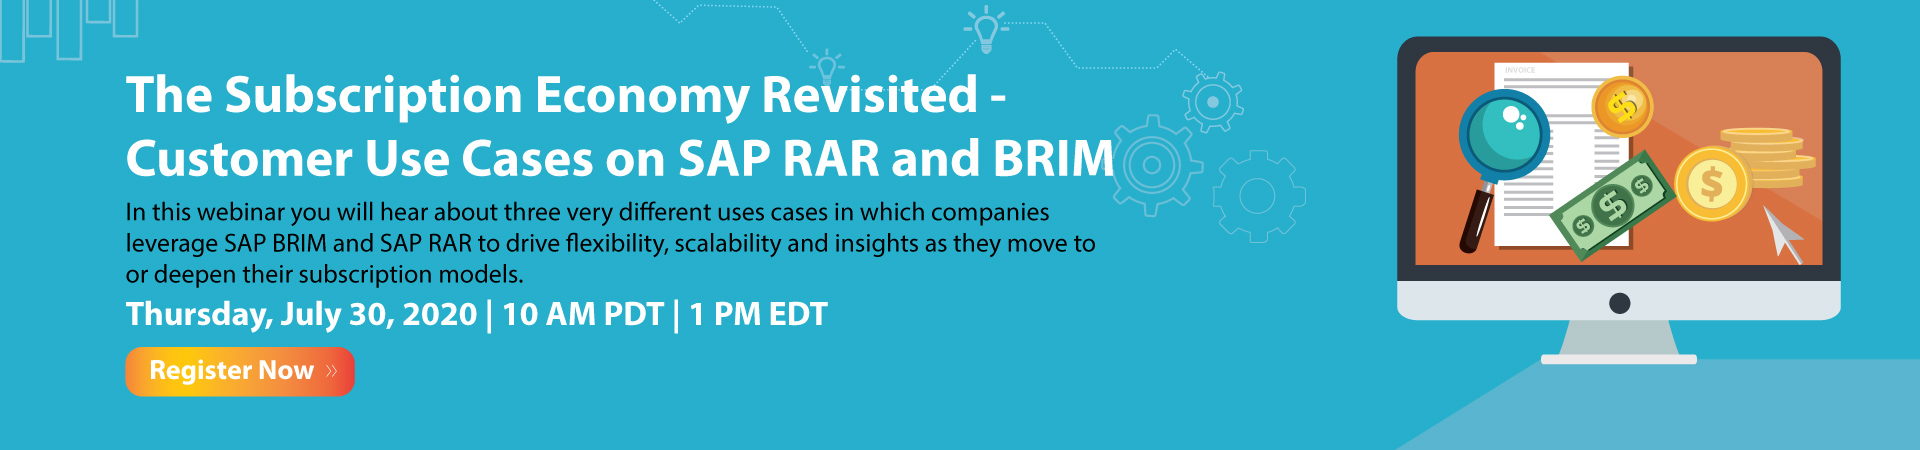 The Subscription Economy Revisited - Customer Use Cases on SAP RAR and BRIM Banner